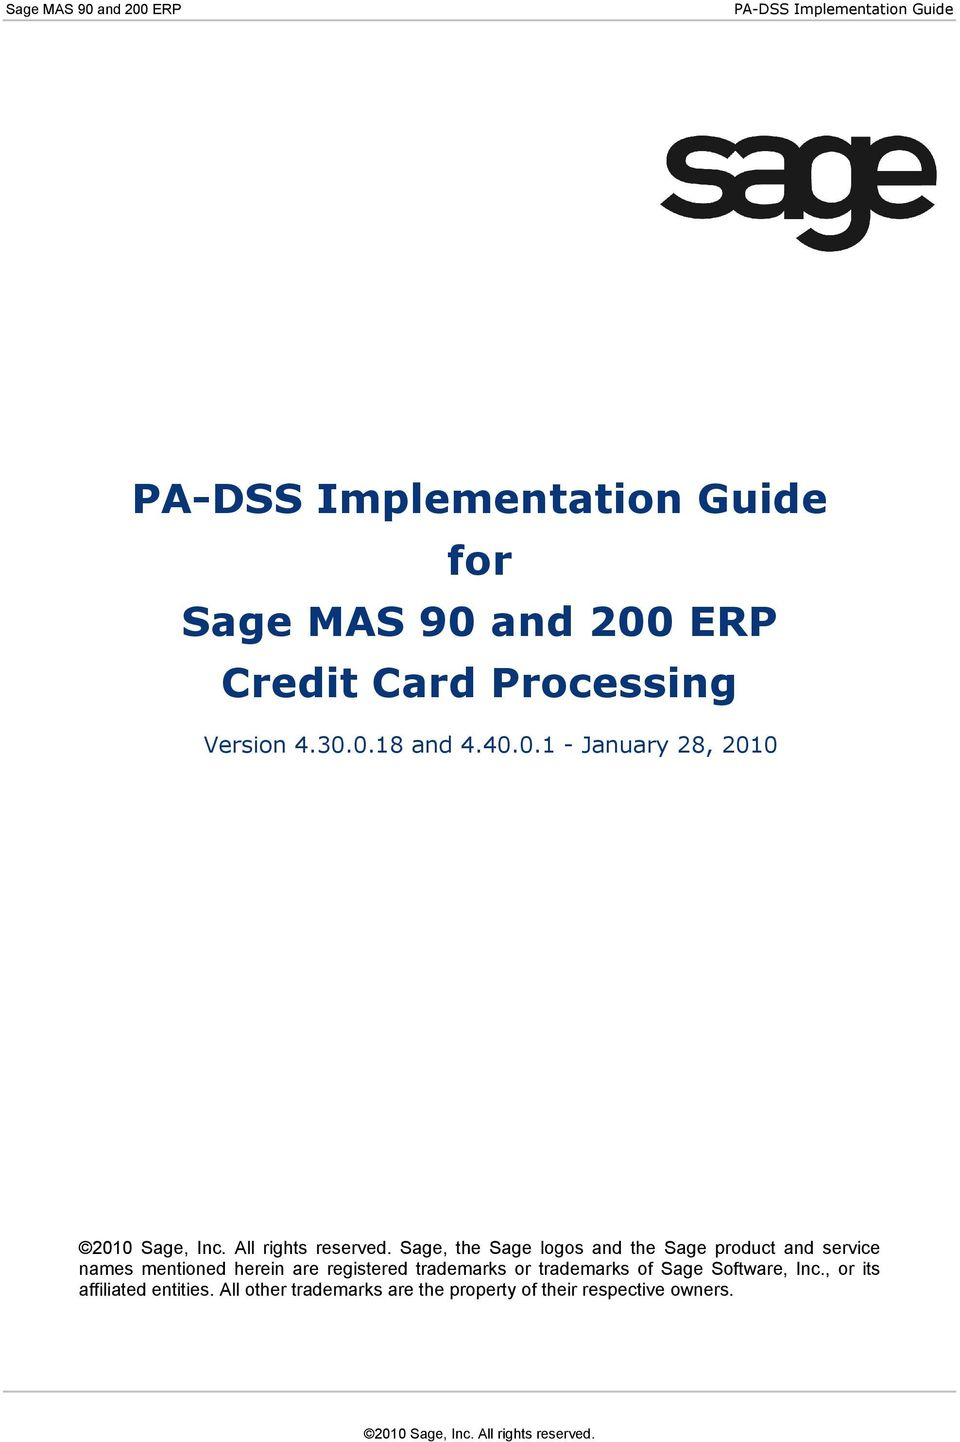 ERP Credit Card Processing Version 4.30.